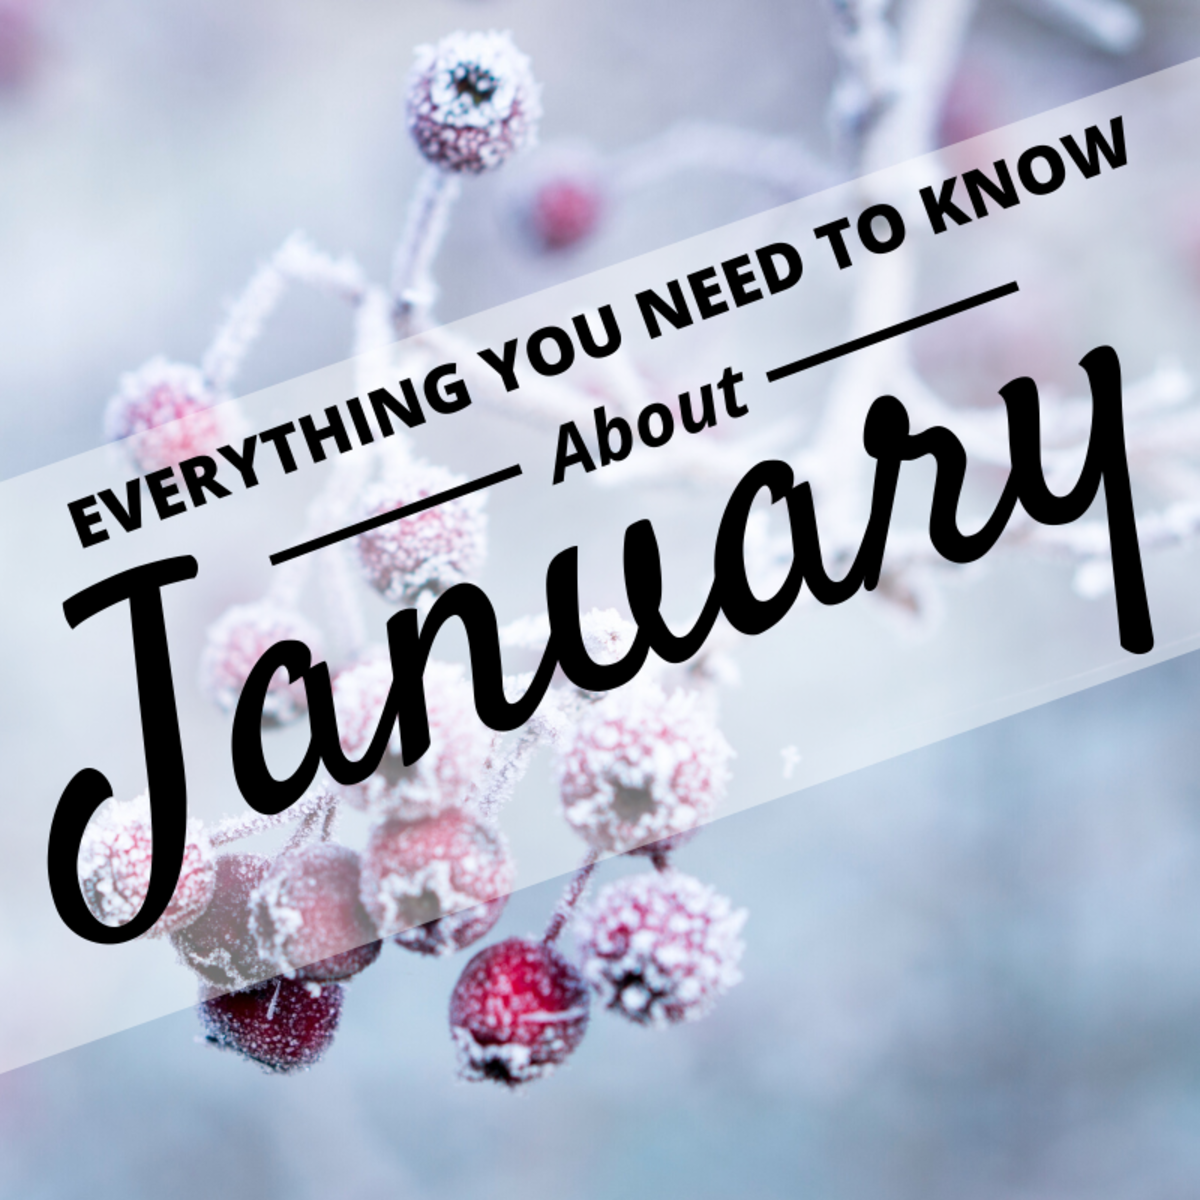 There's a lot more to the month of January than its premier position on the calendar.